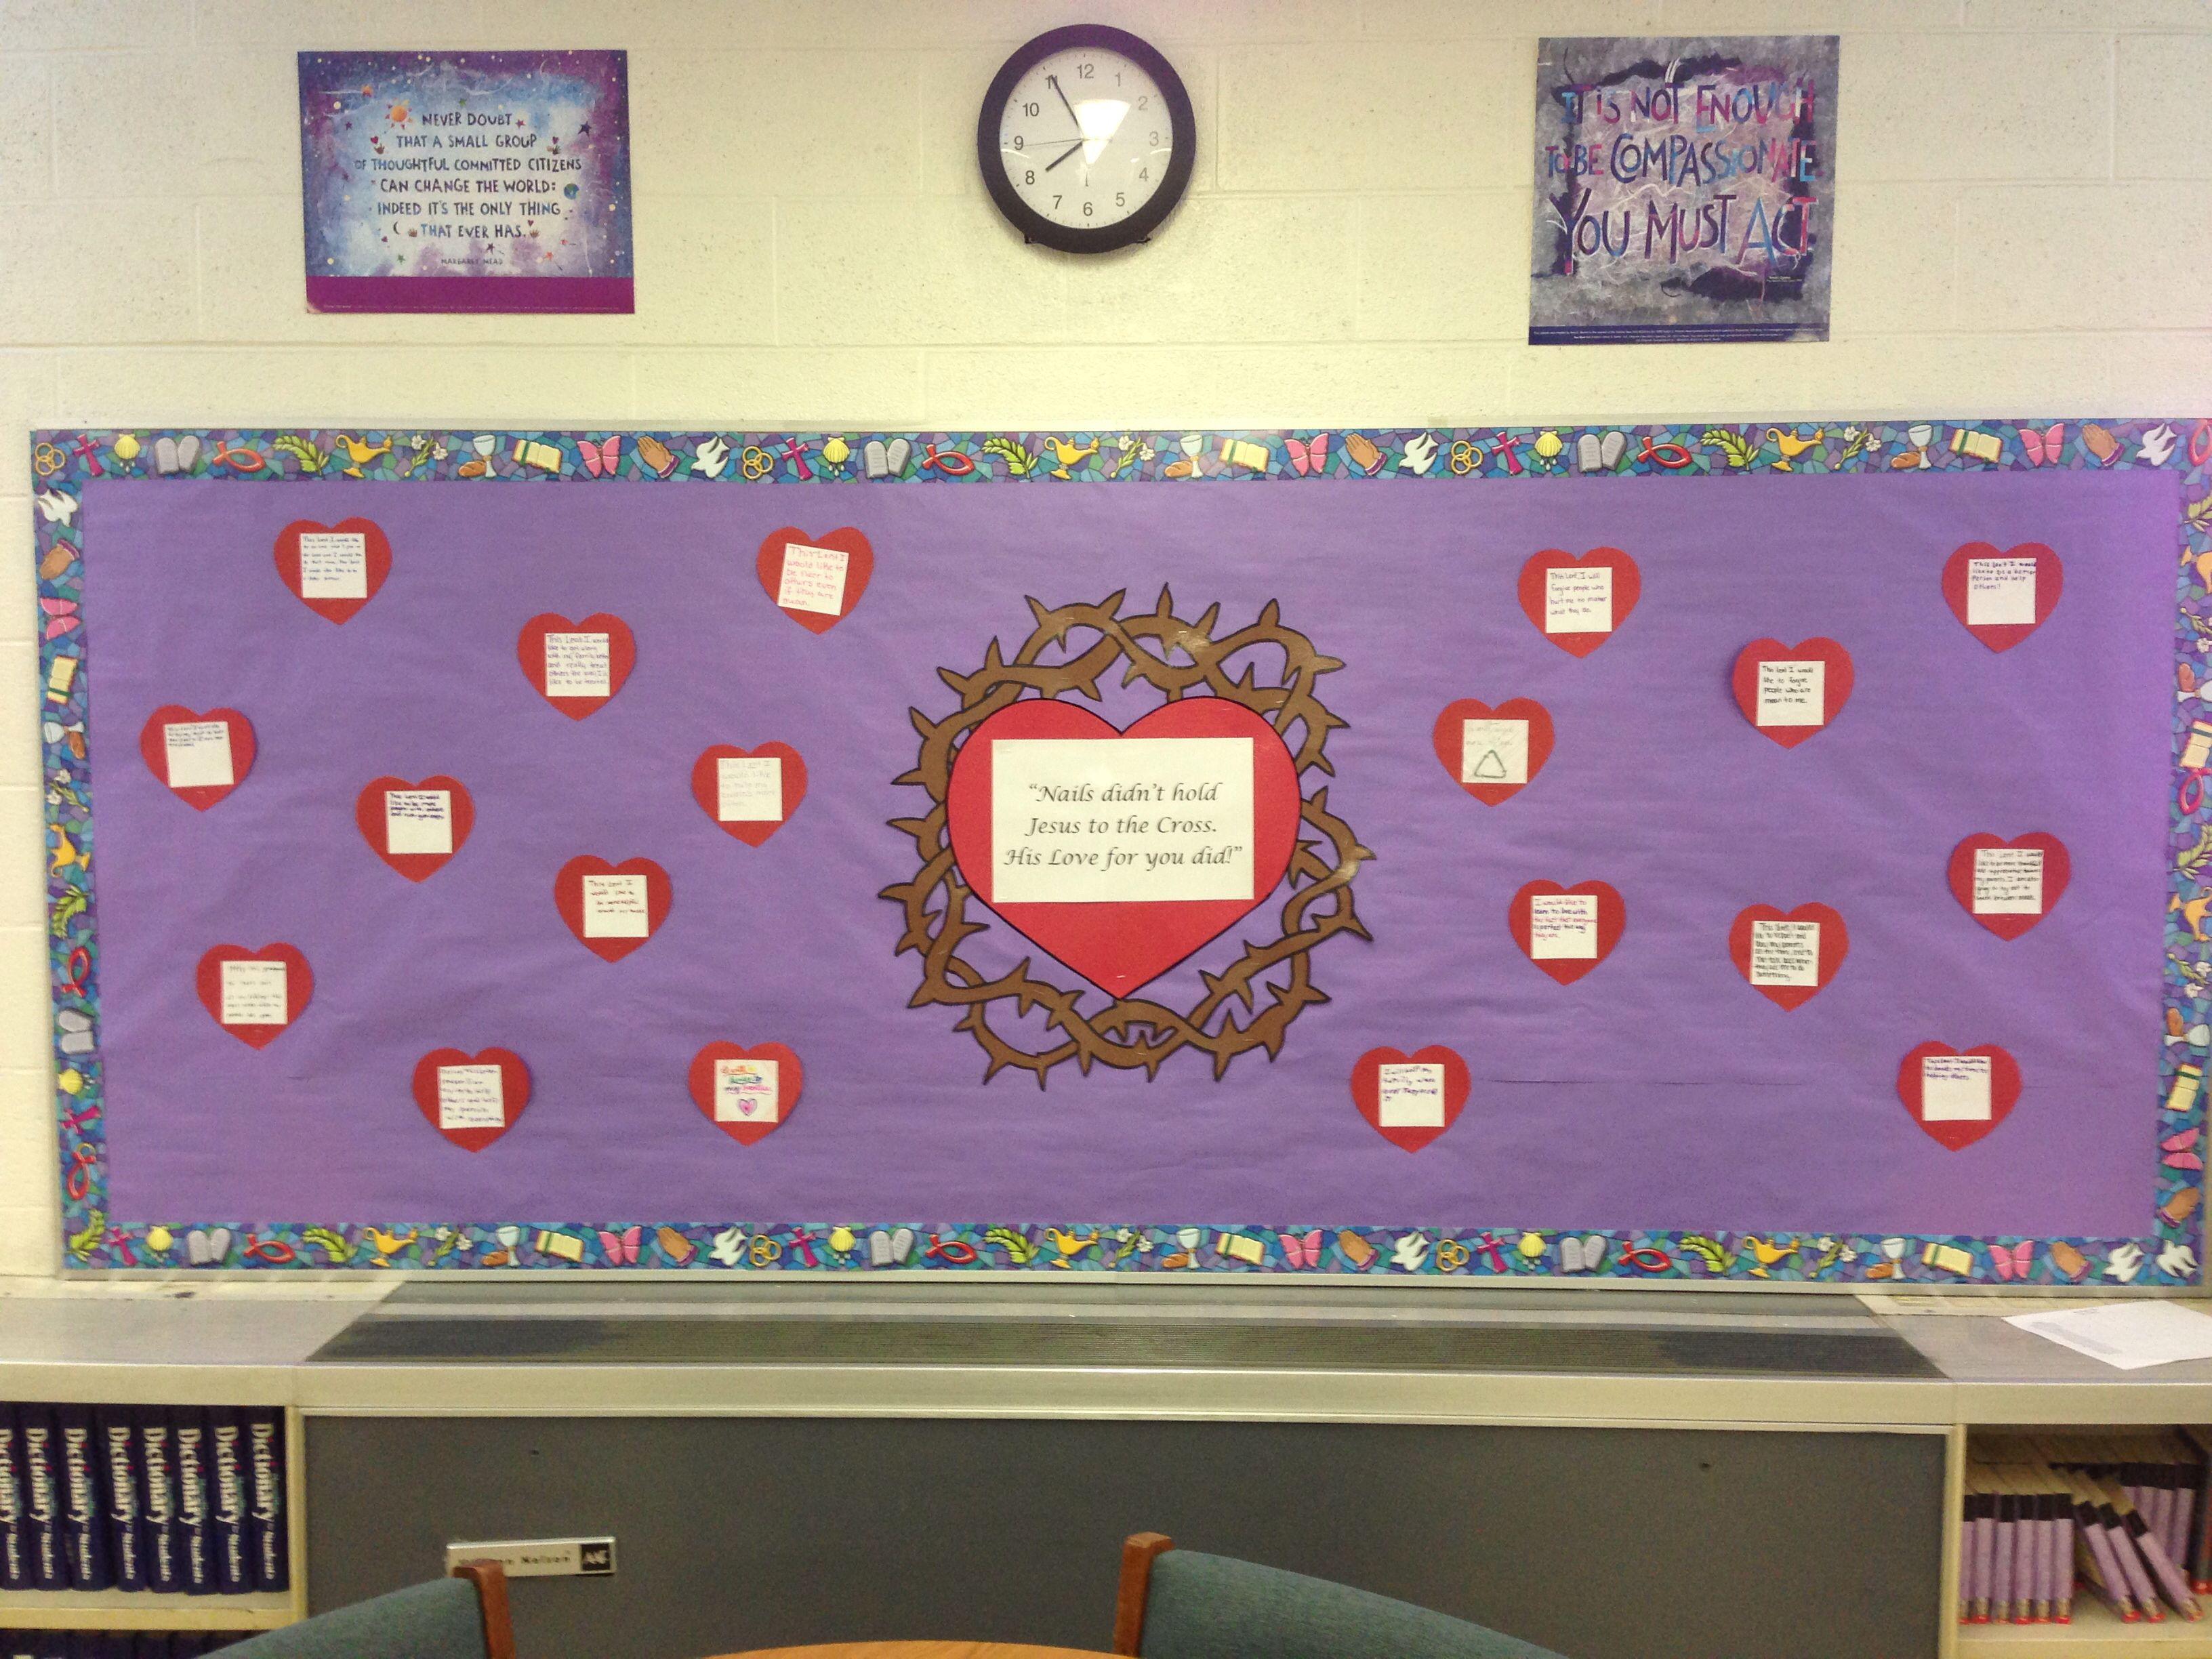 Lent Bulletin Board Nails Didn T Hold Jesus To The Cross His Love For You Did Valentine Boards Easter School Class